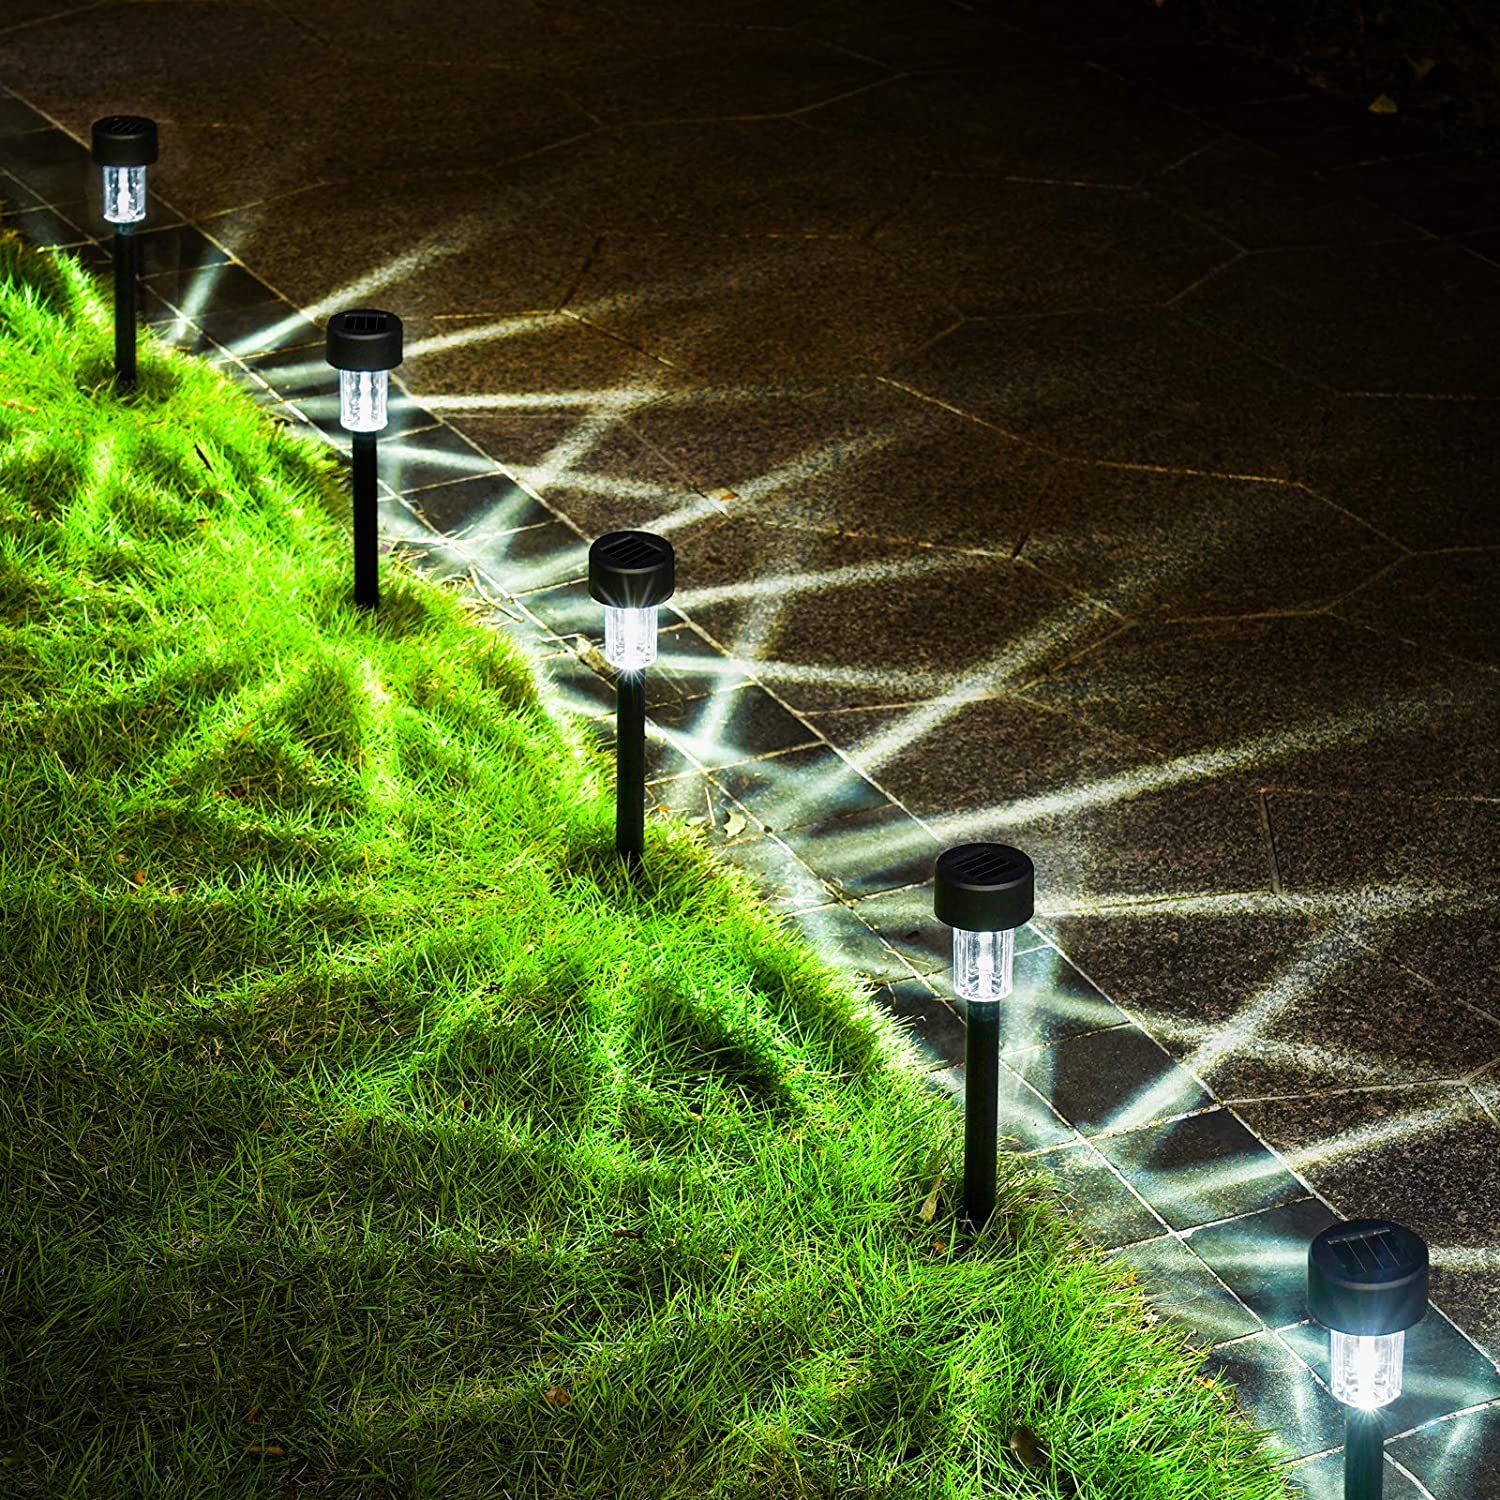 GIGALUMI Solar Pathway Lights Outdoor 12 Pack, Bright Solar Powered Garden Lights, Waterproof Solar Landscape Lights Outdoor for Pathway, Lawn, Yard, Patio, Path, Walkway Decoration (Cold White)